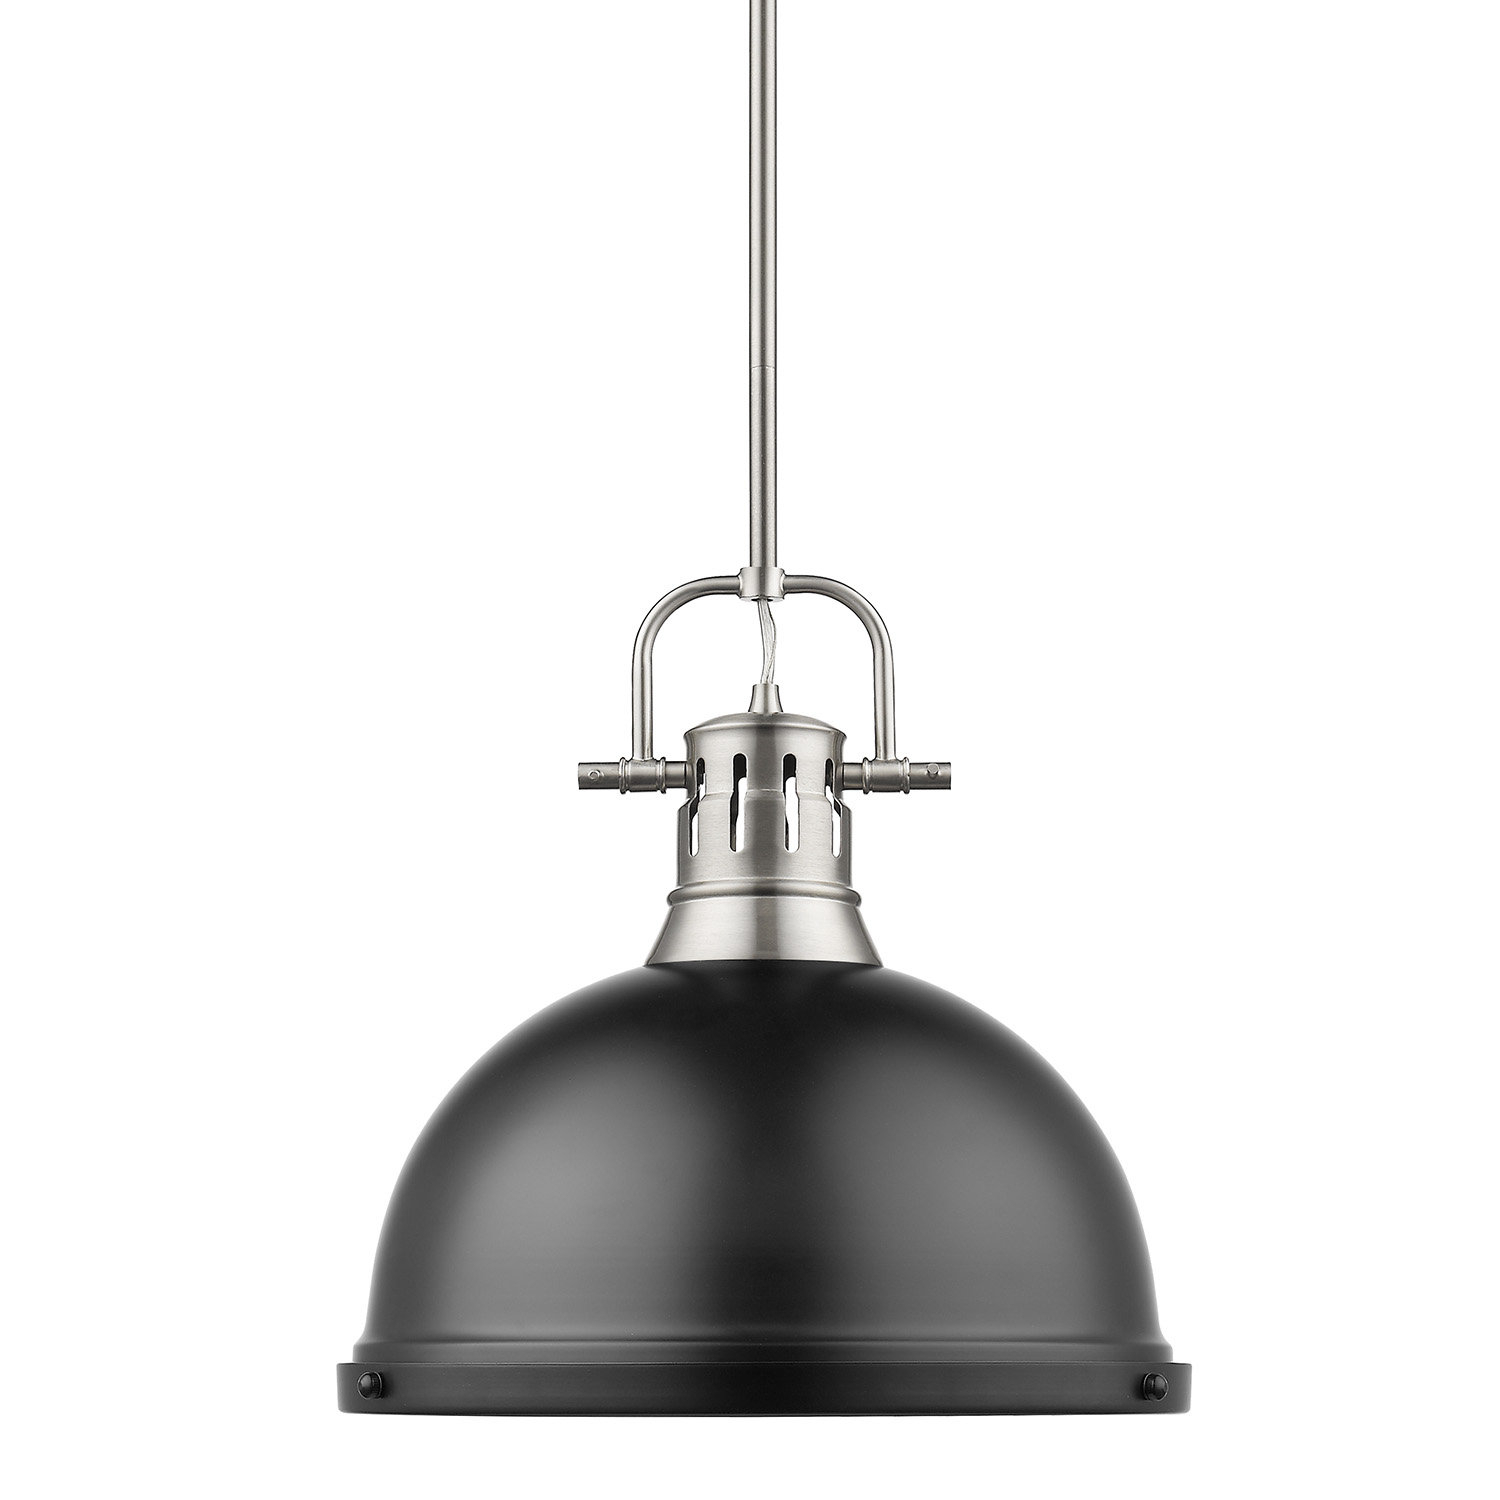 Bodalla 1-Light Single Dome Pendant for 1-Light Single Dome Pendants (Image 5 of 30)